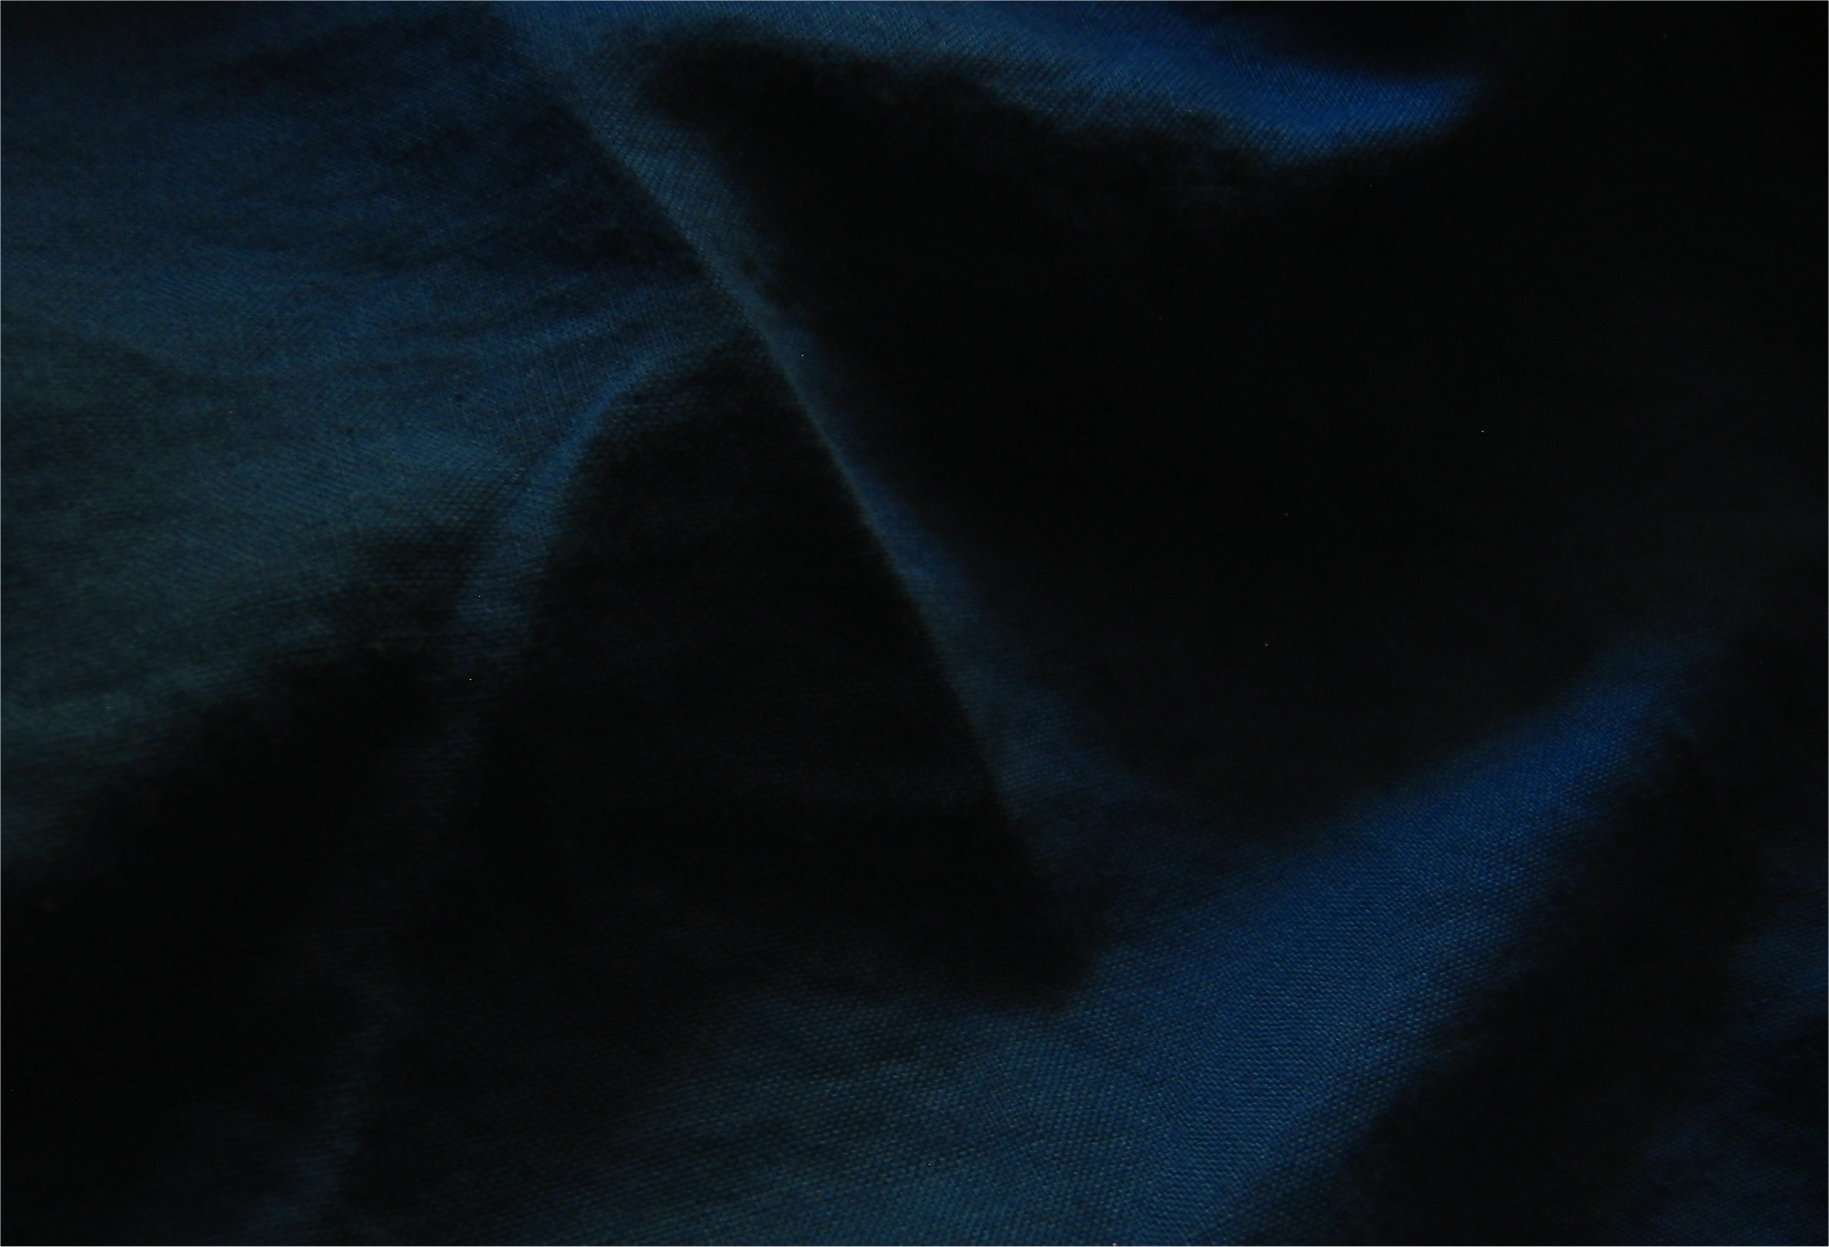 wrinkled shirt close up and shadowed - soul-amp.com